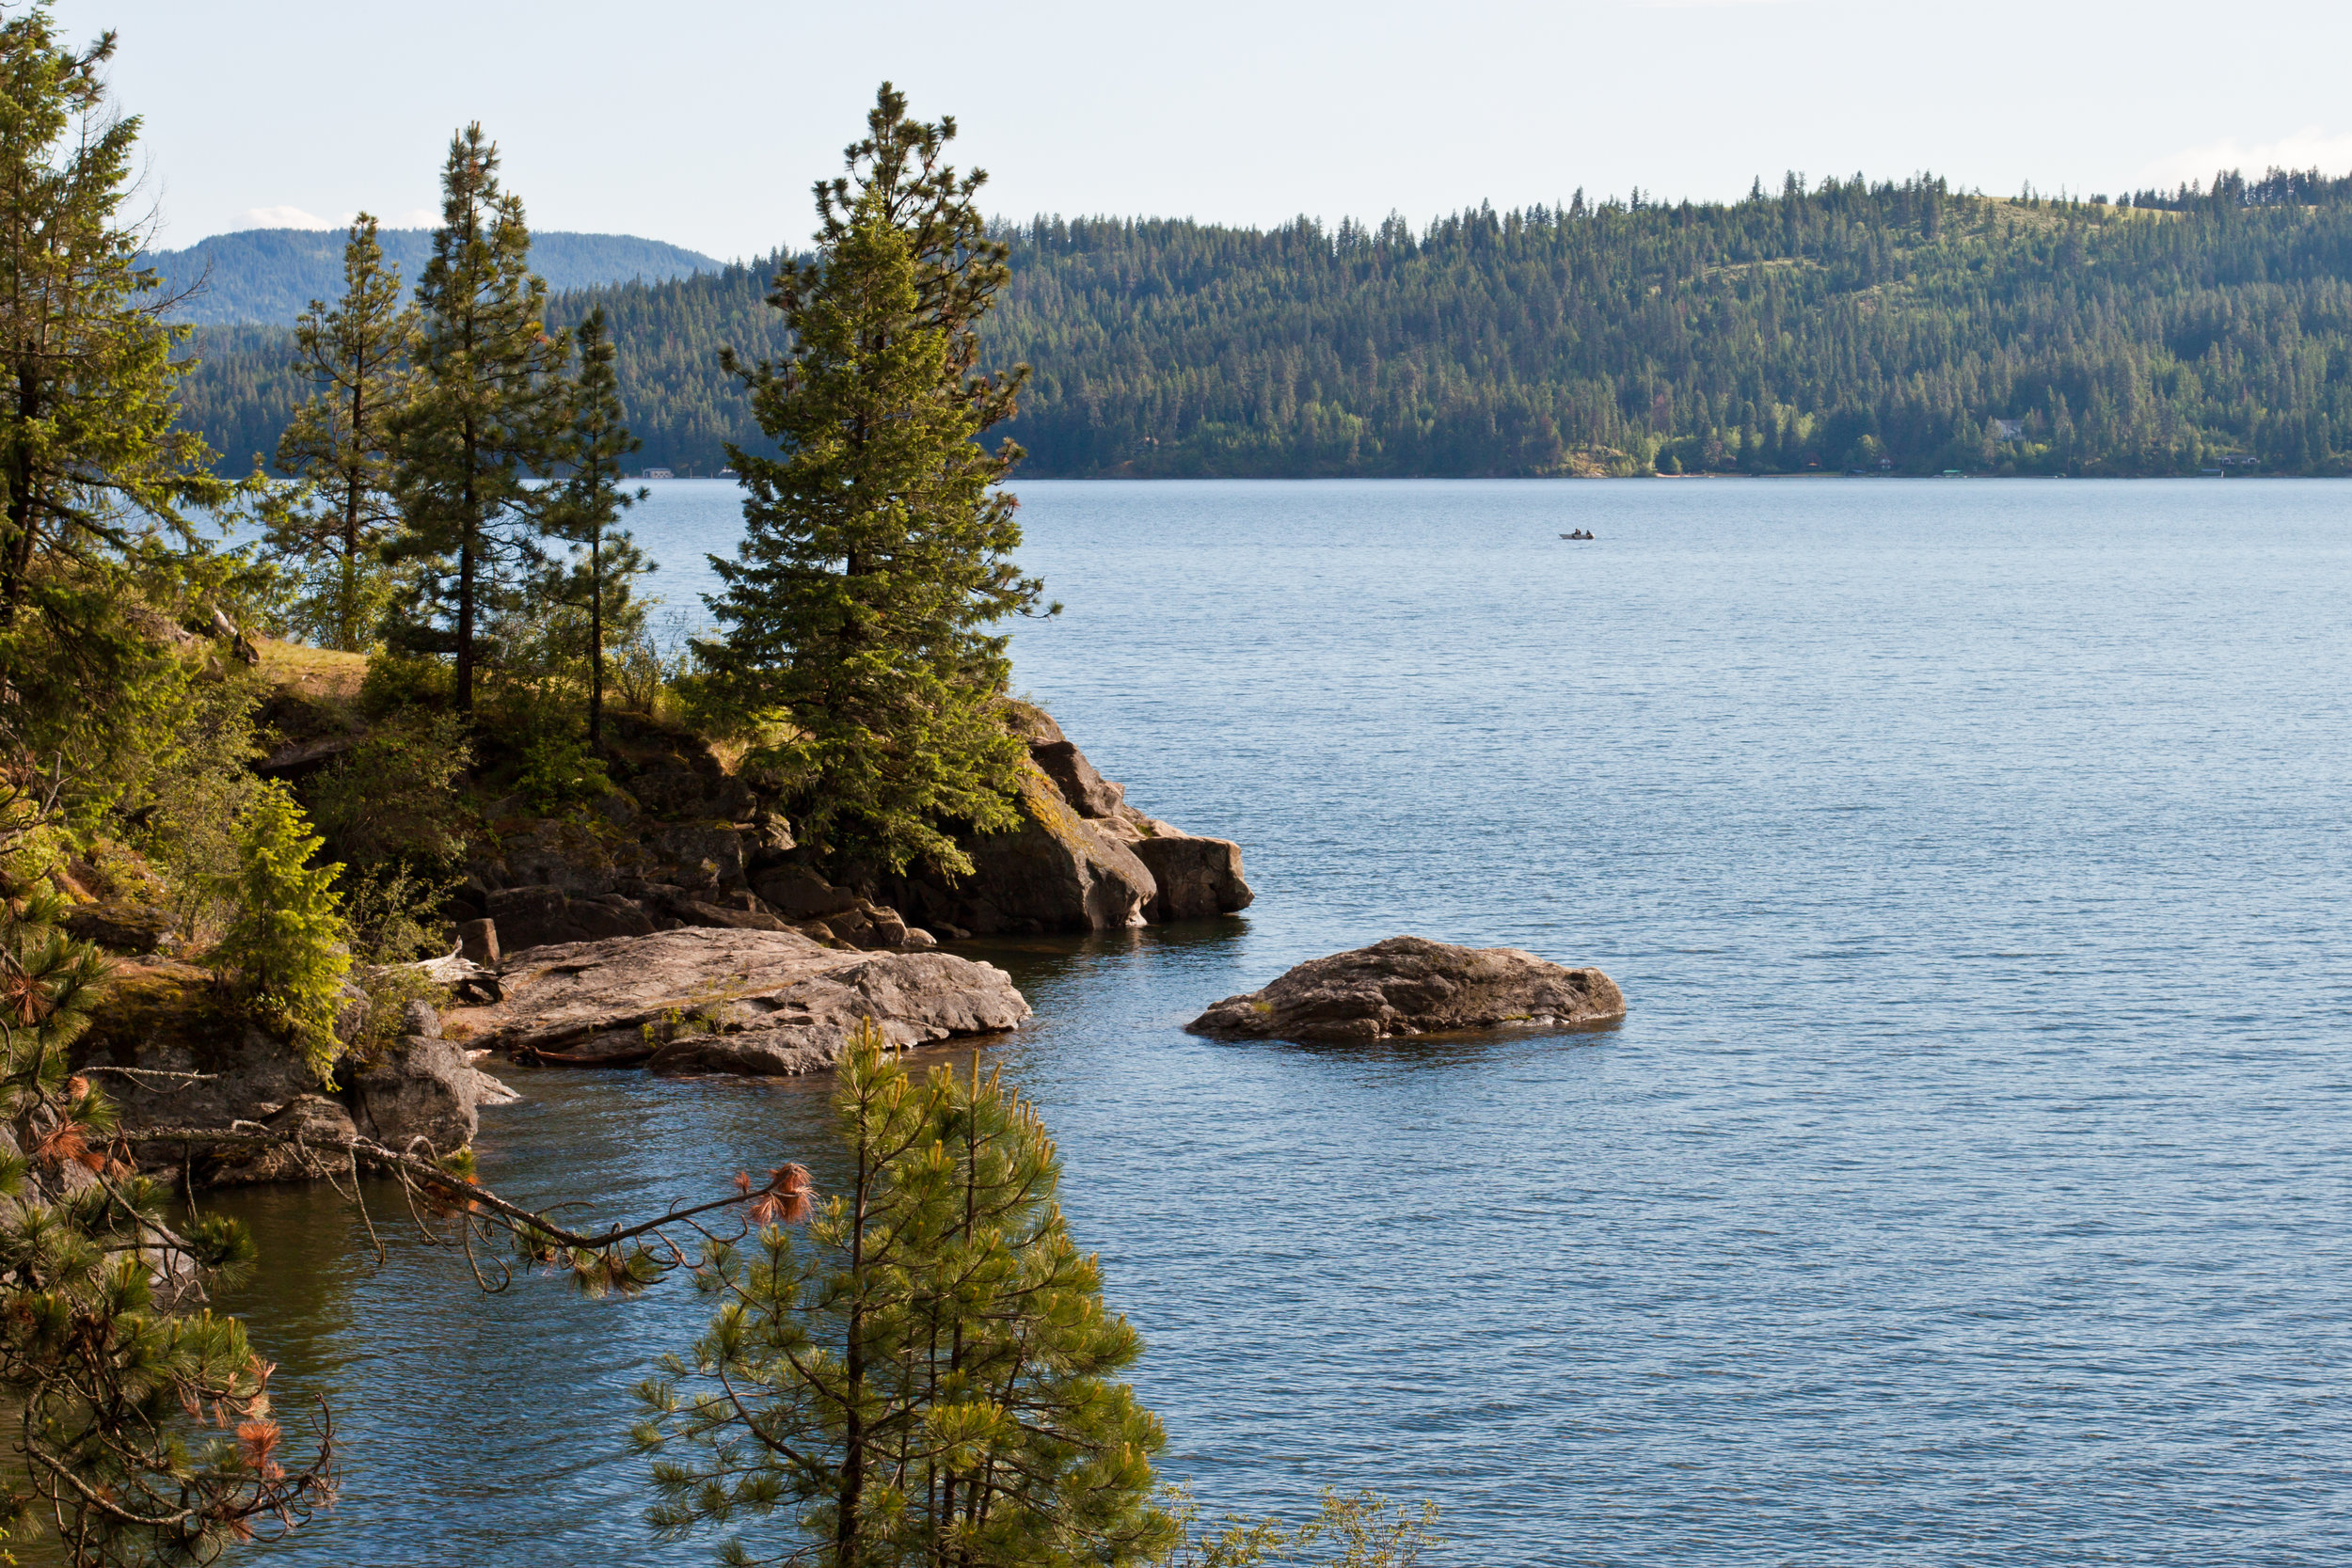 Coeur d'alene lake with trees.